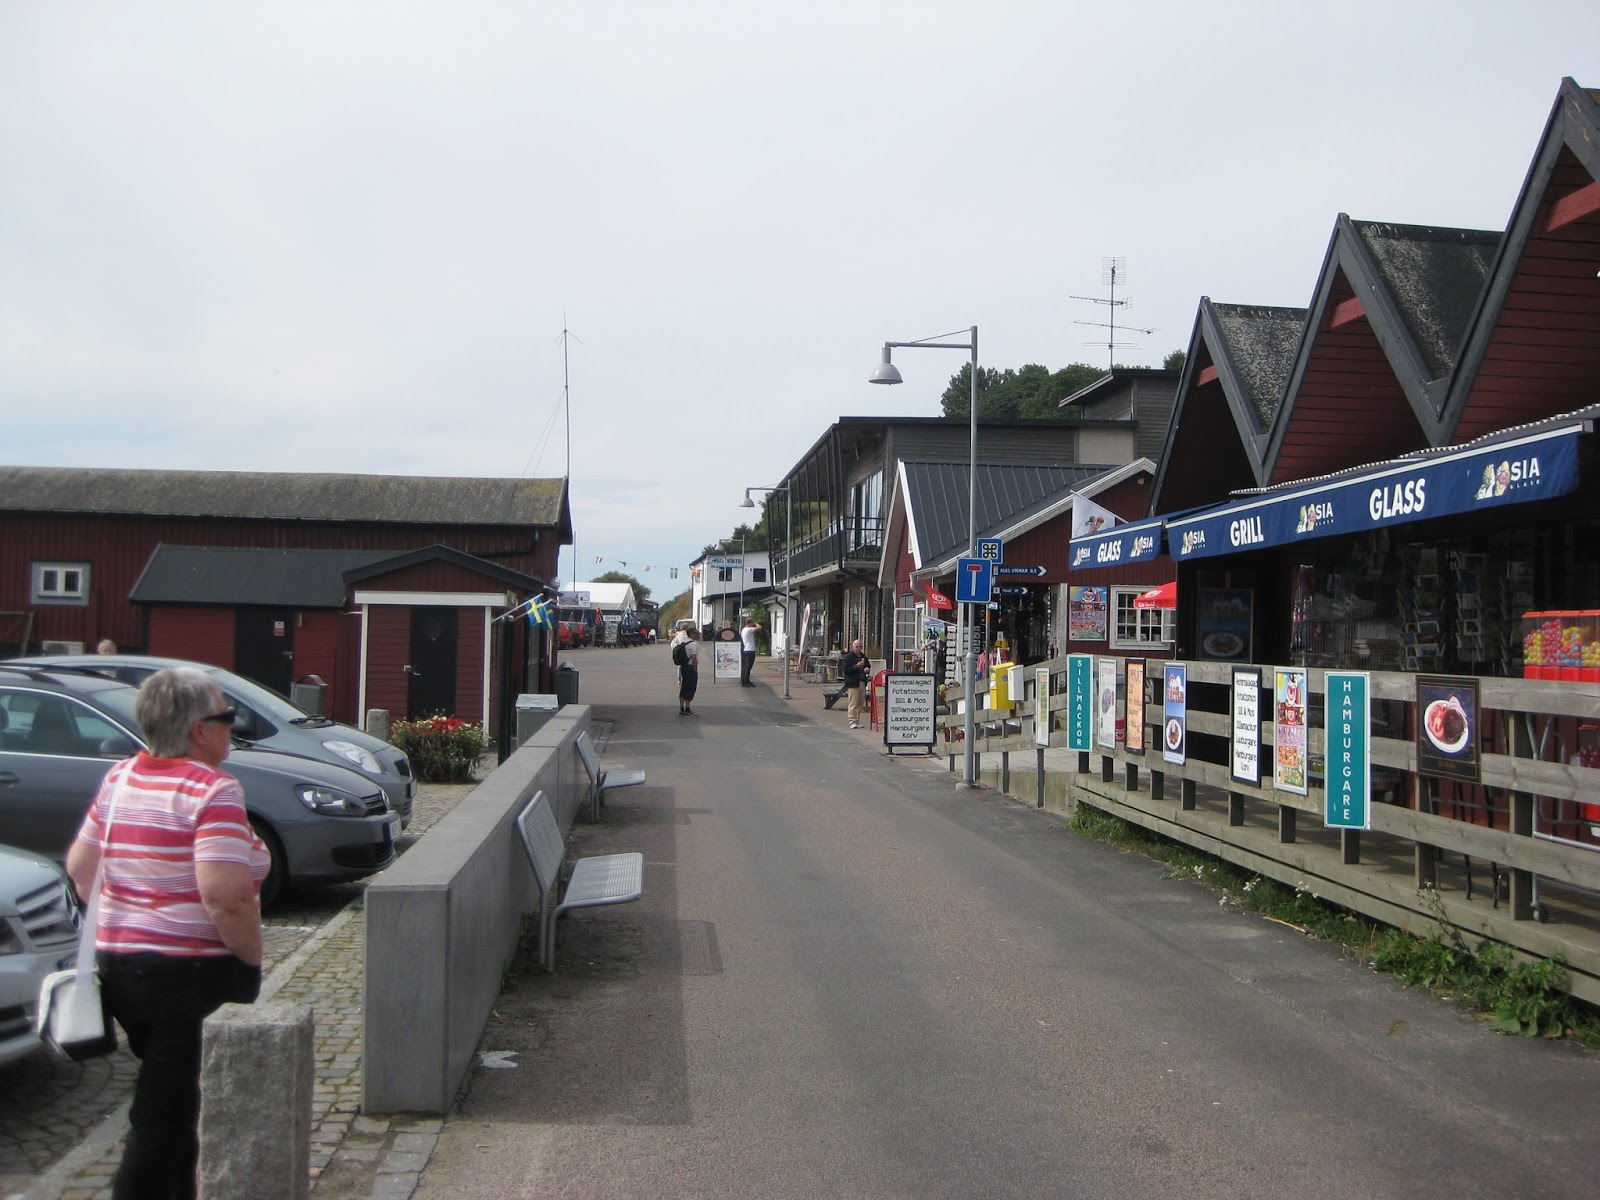 image of Kåsaberga Village